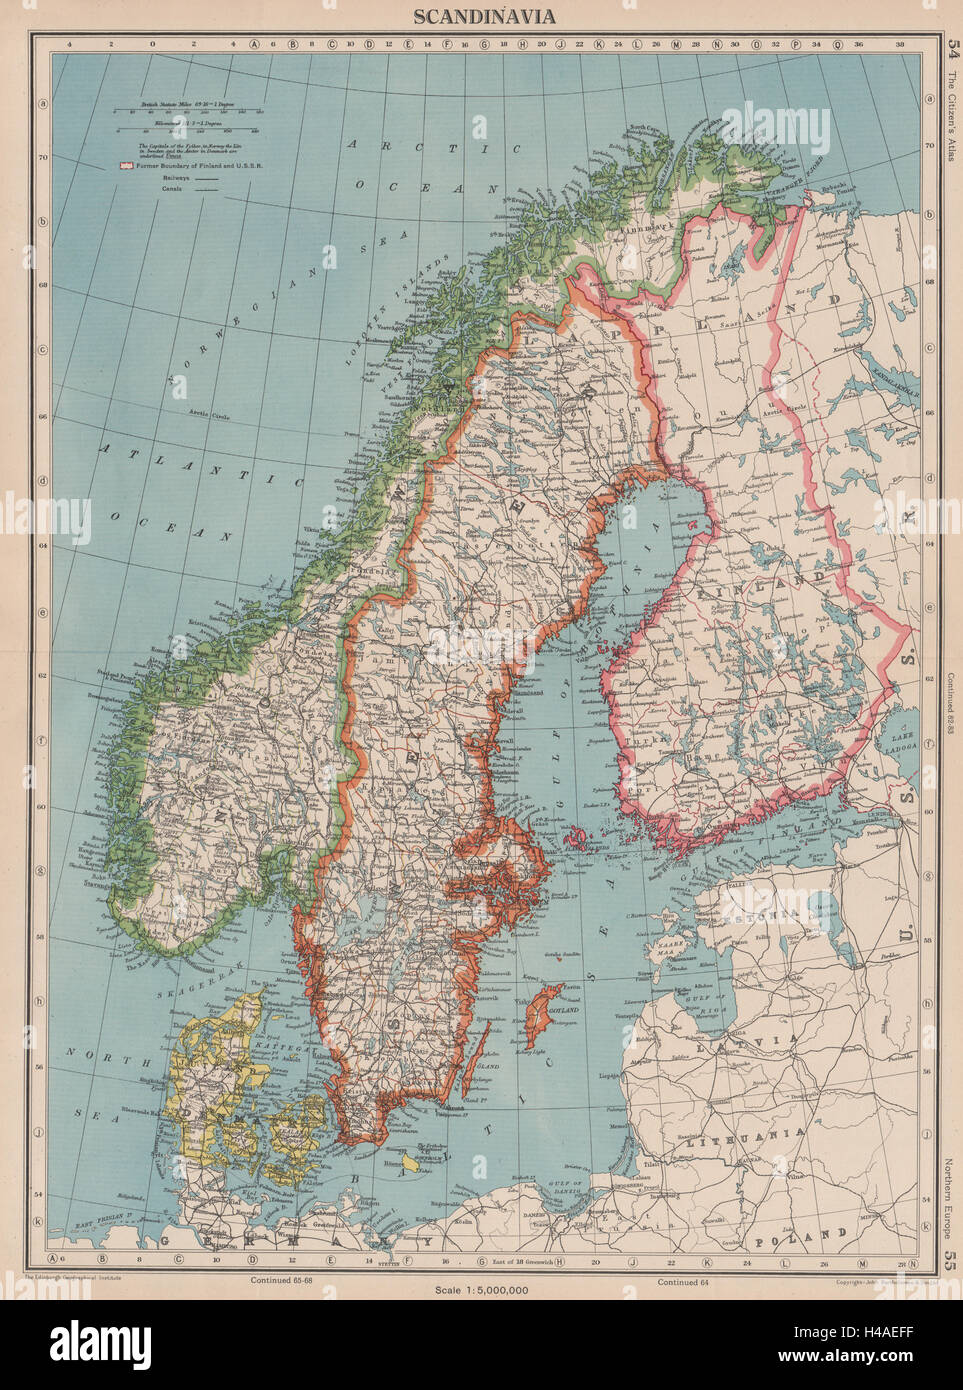 Scandinavia sweden norway denmark finland shows 1940 borders sweden norway denmark finland shows 1940 borders 1944 map gumiabroncs Images